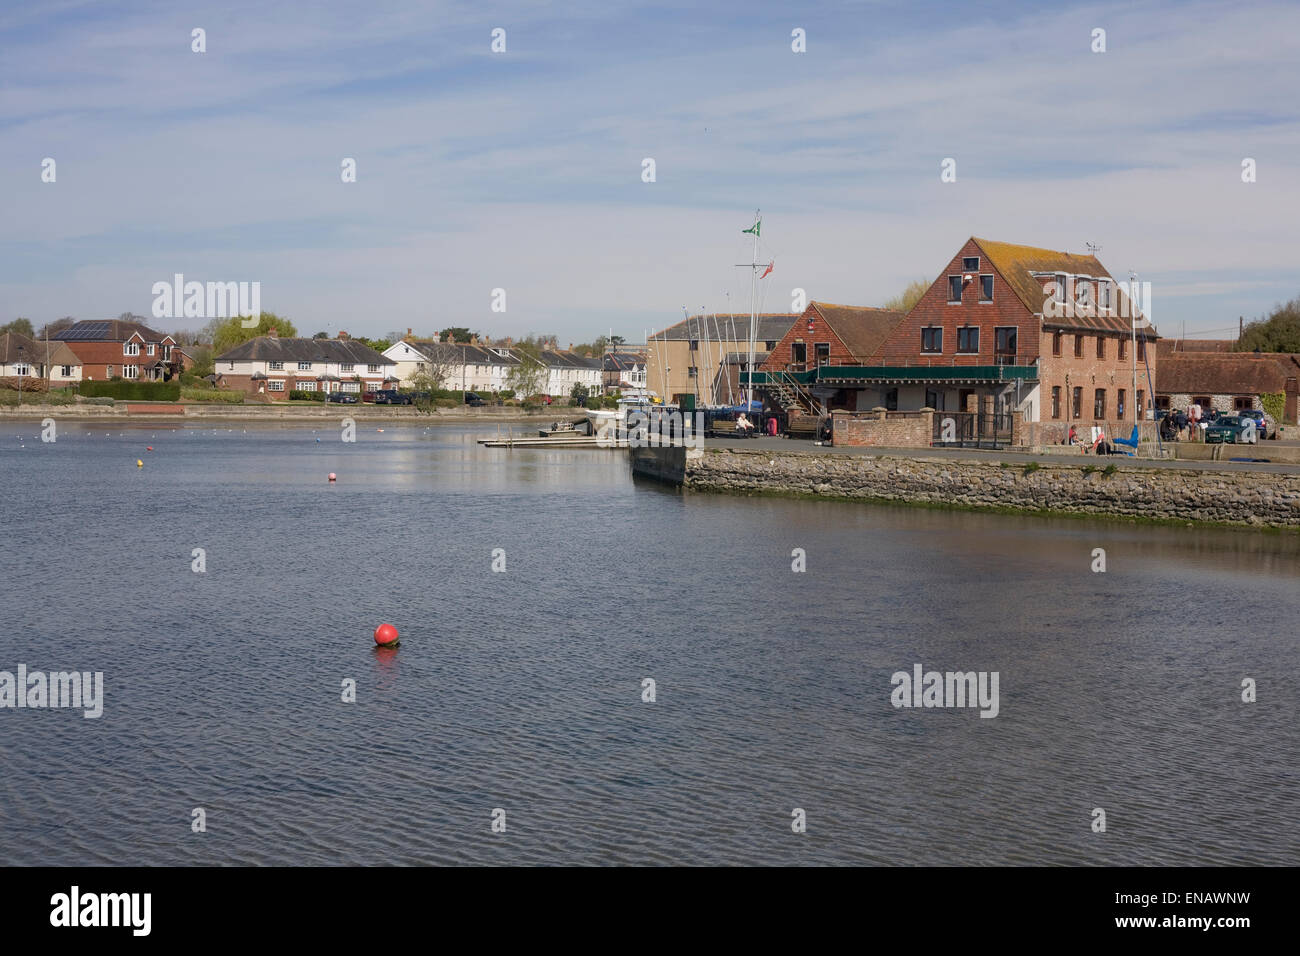 Emsworth harbour with Essc building, rippled water and distant houses - Stock Image